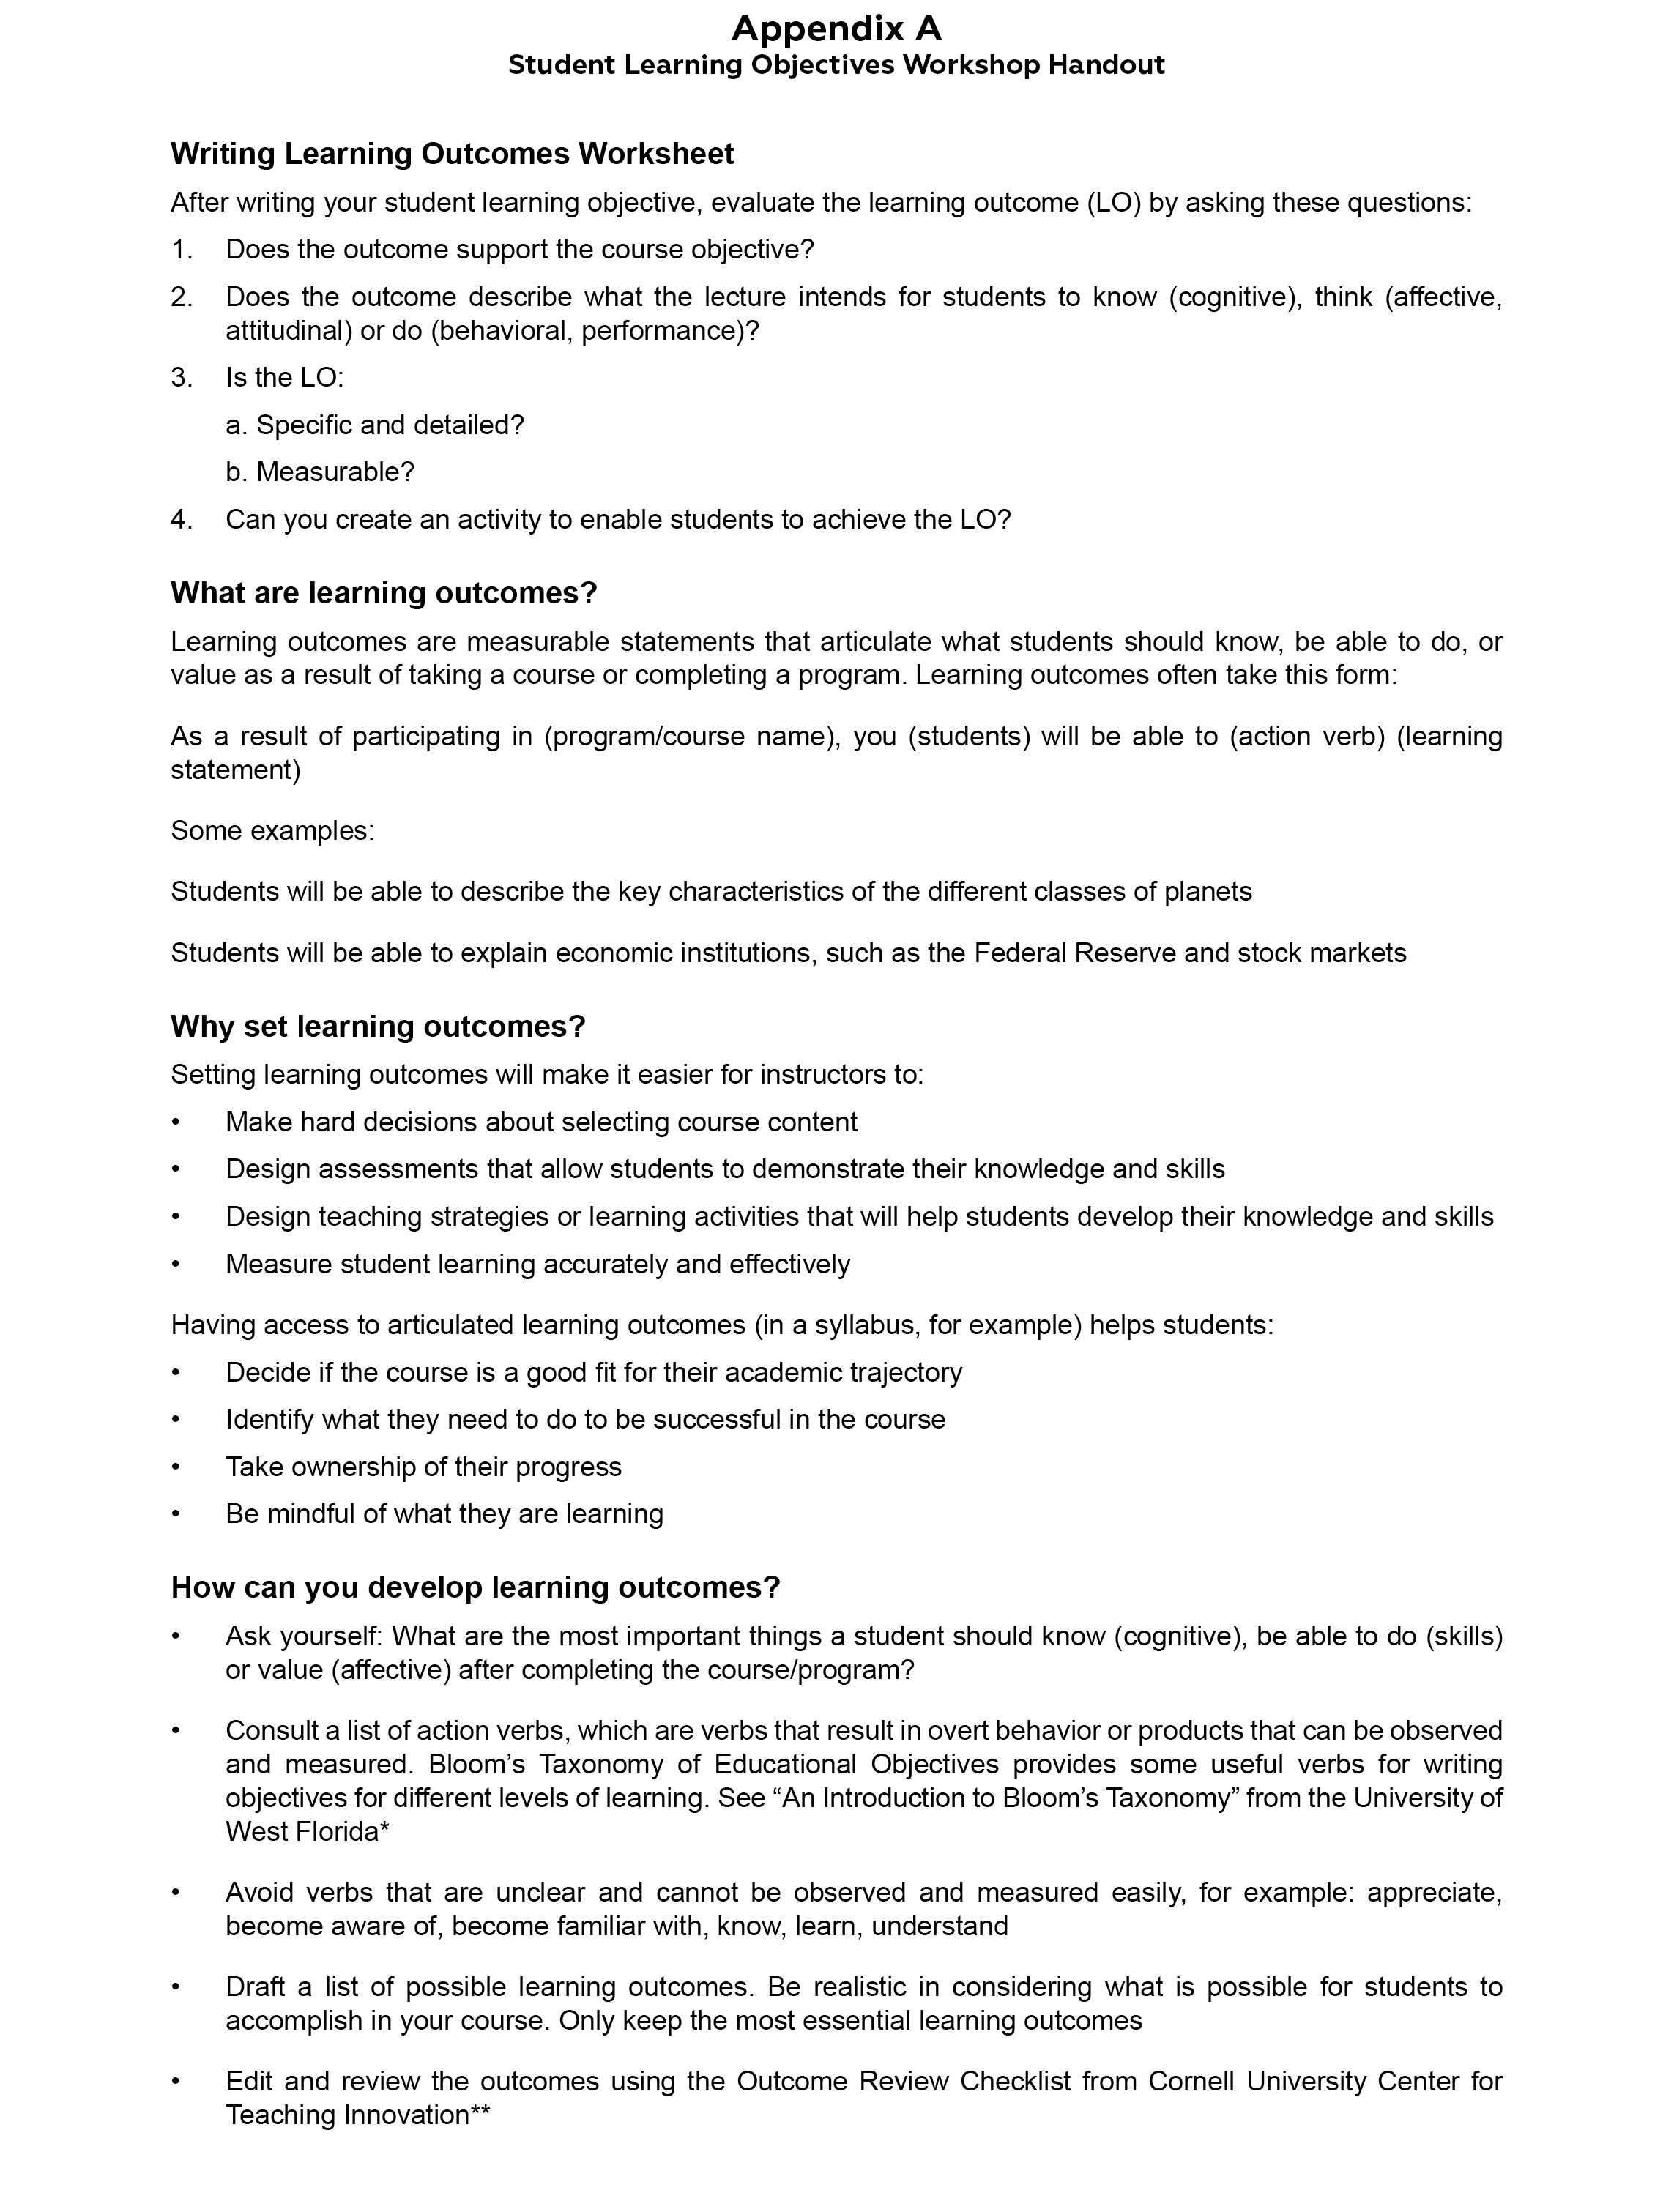 Unled Template Cover Letter Nz Of Recommendation For Senior Teacher Ixrbjt on